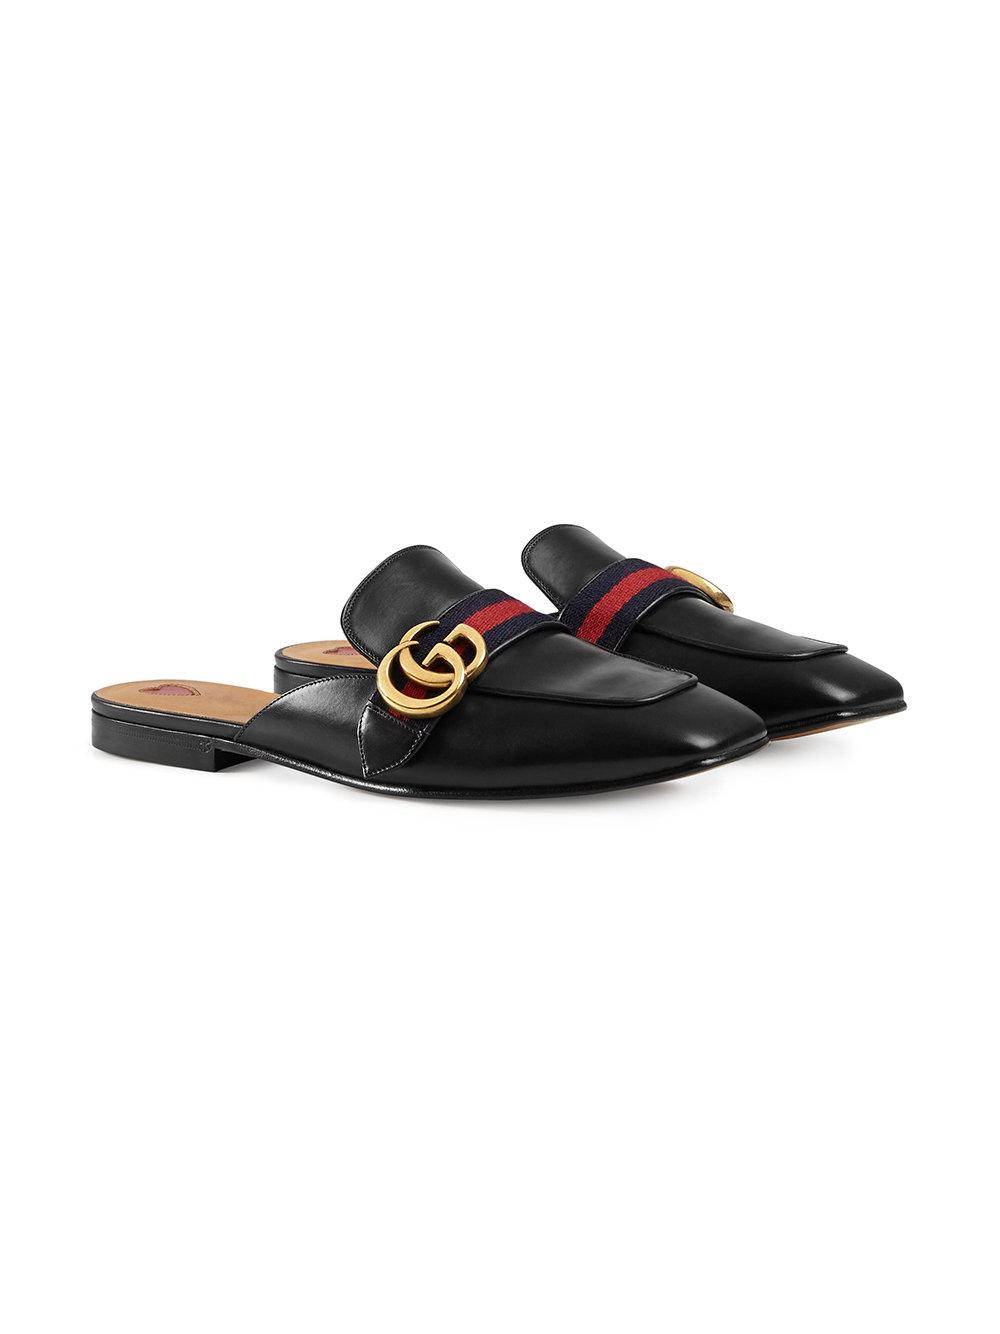 88fa0c3547c Lyst - Gucci Web-trimmed Slippers in Black